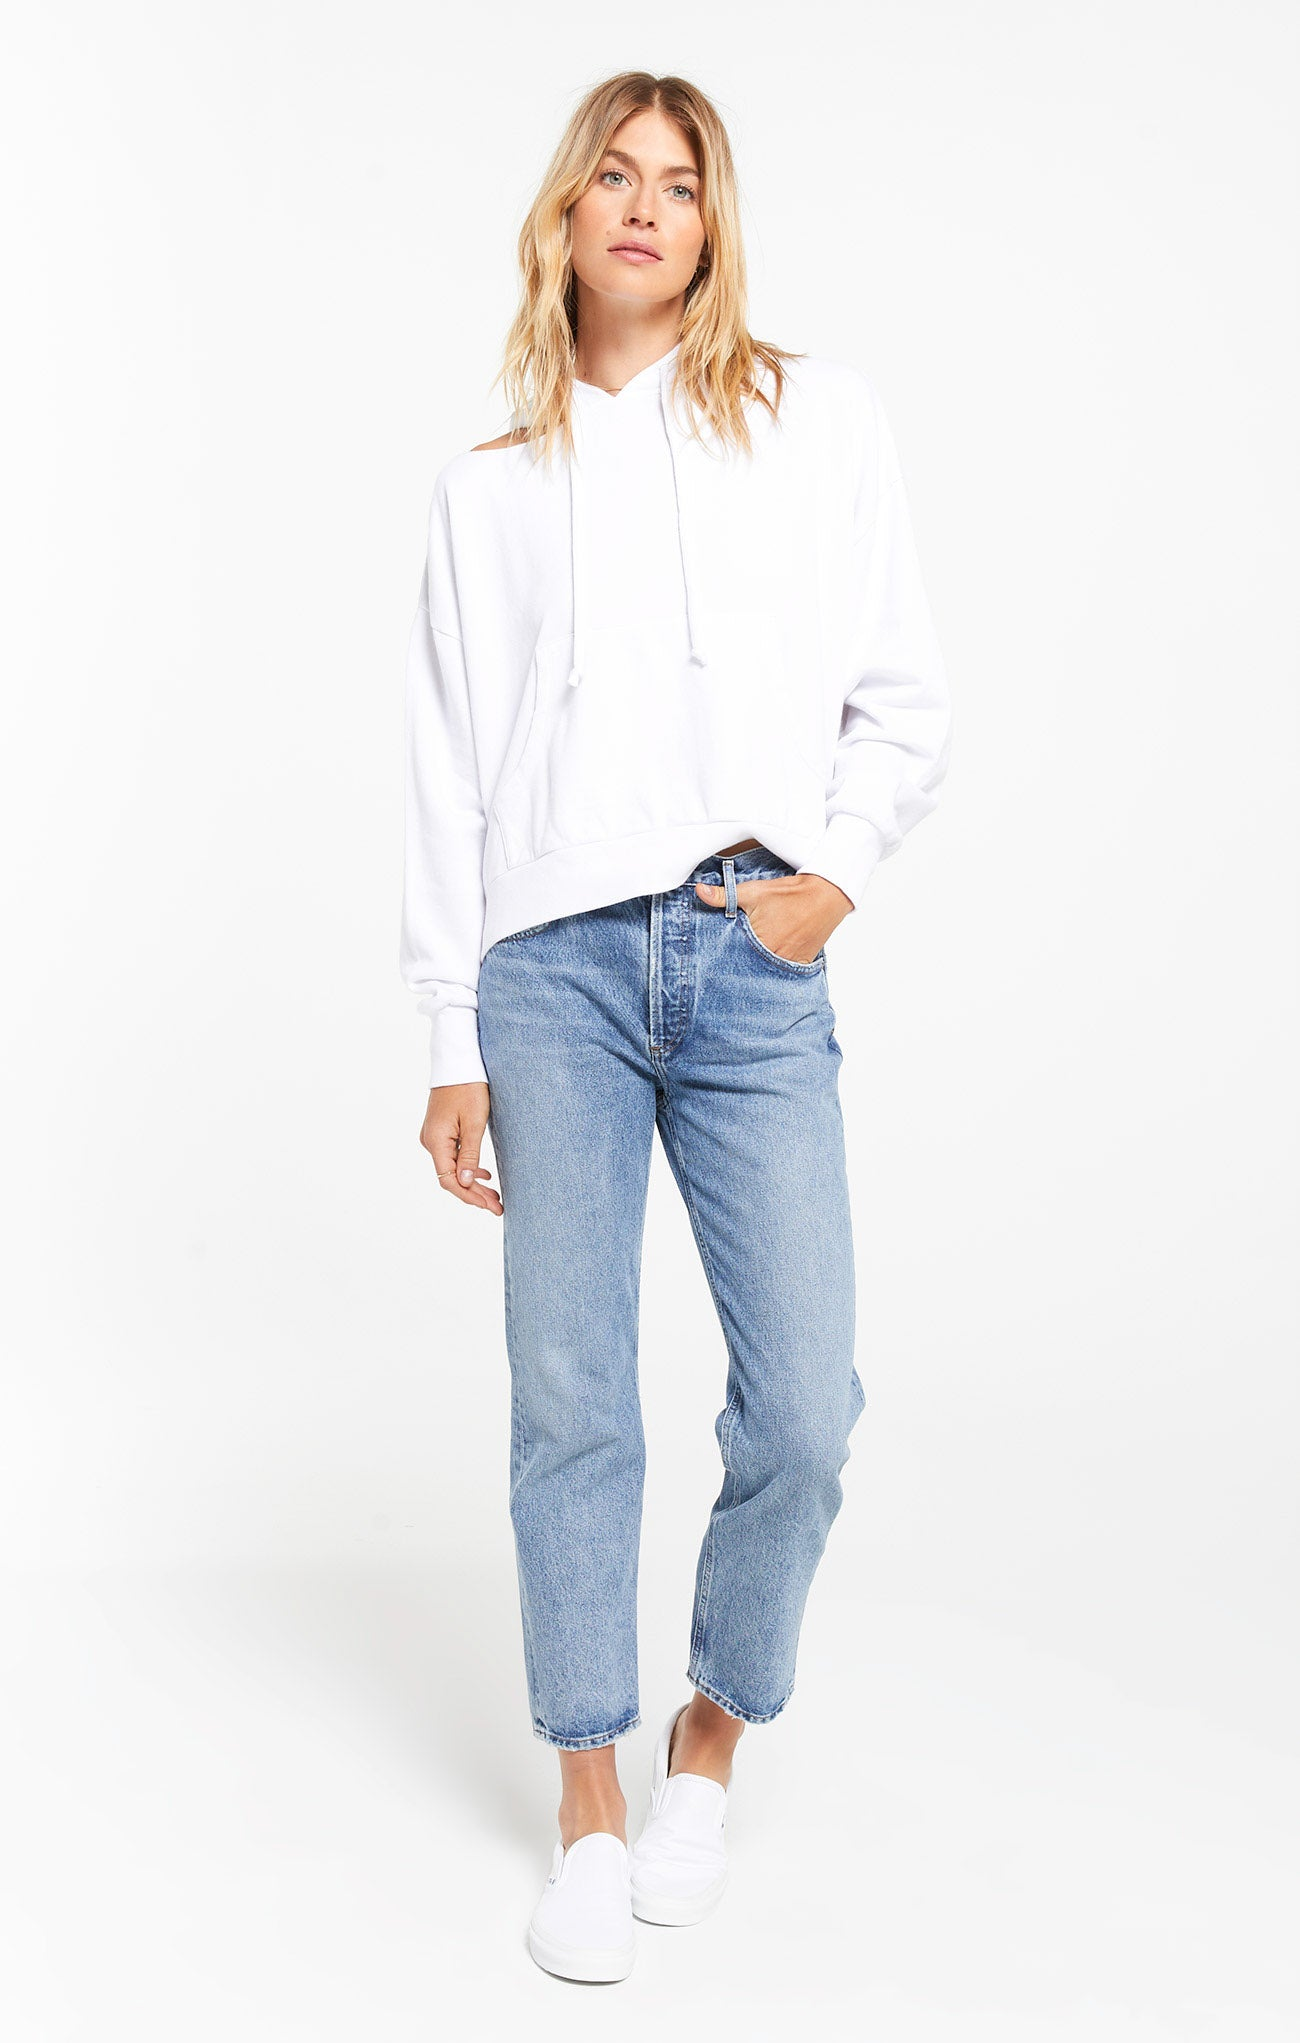 Tops Jerri Cut-Out Terry Sweatshirt Jerri Cut-Out Terry Sweatshirt